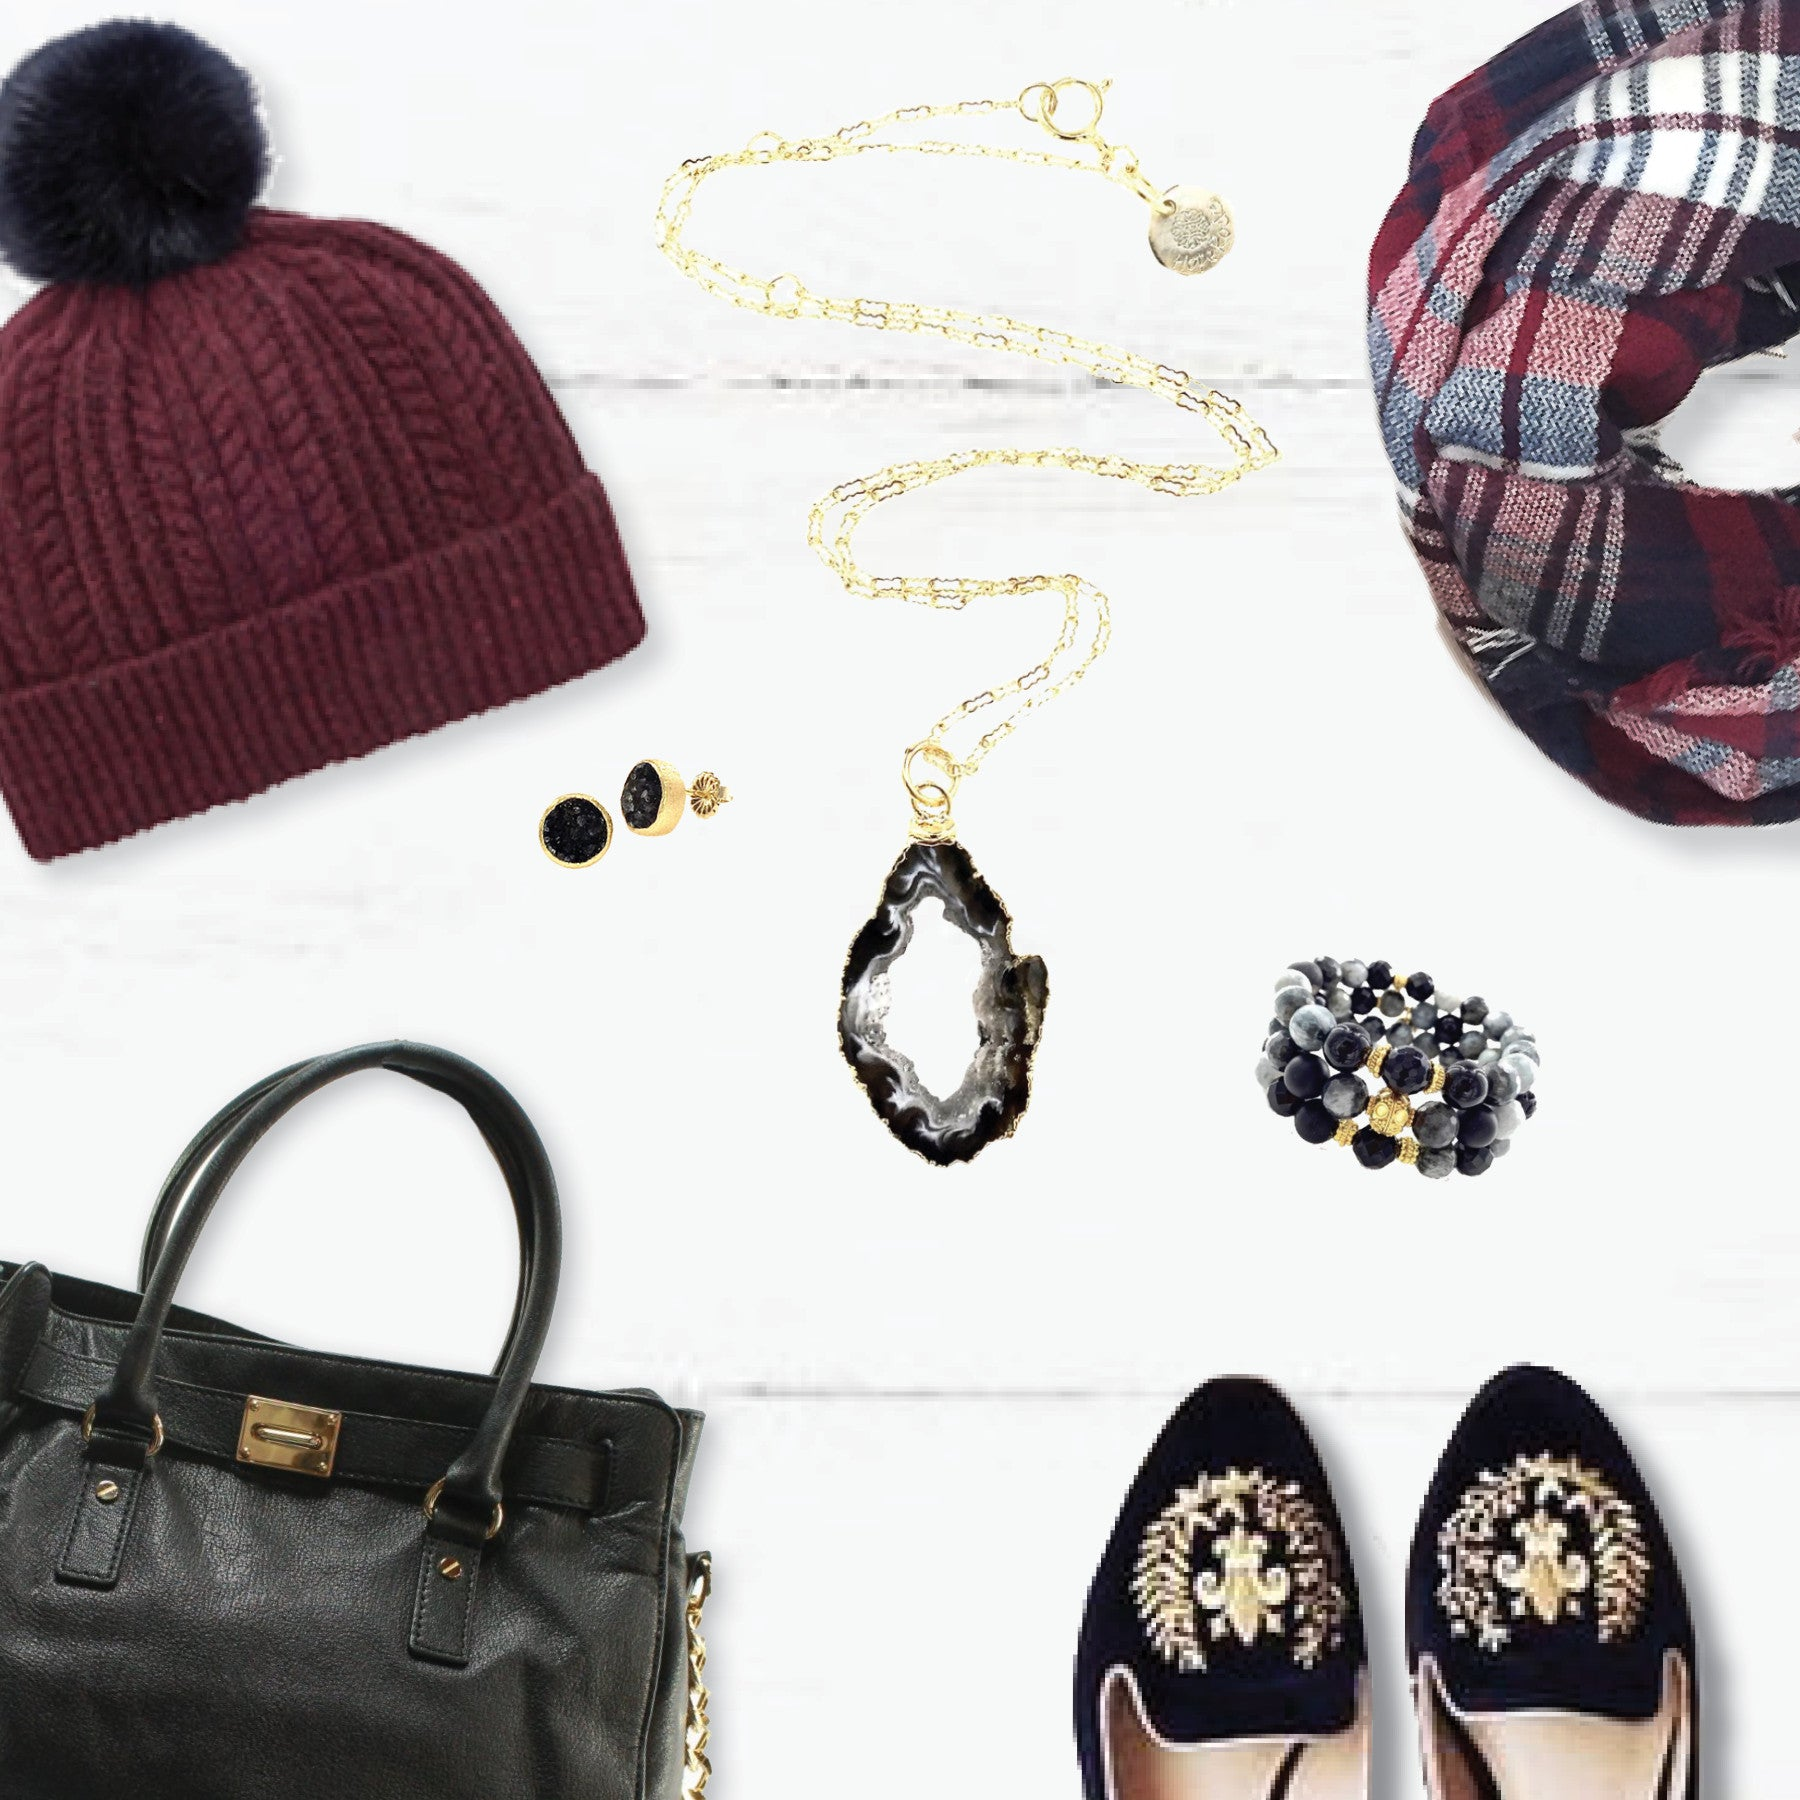 HopeRocks Holiday: Shop the Look!